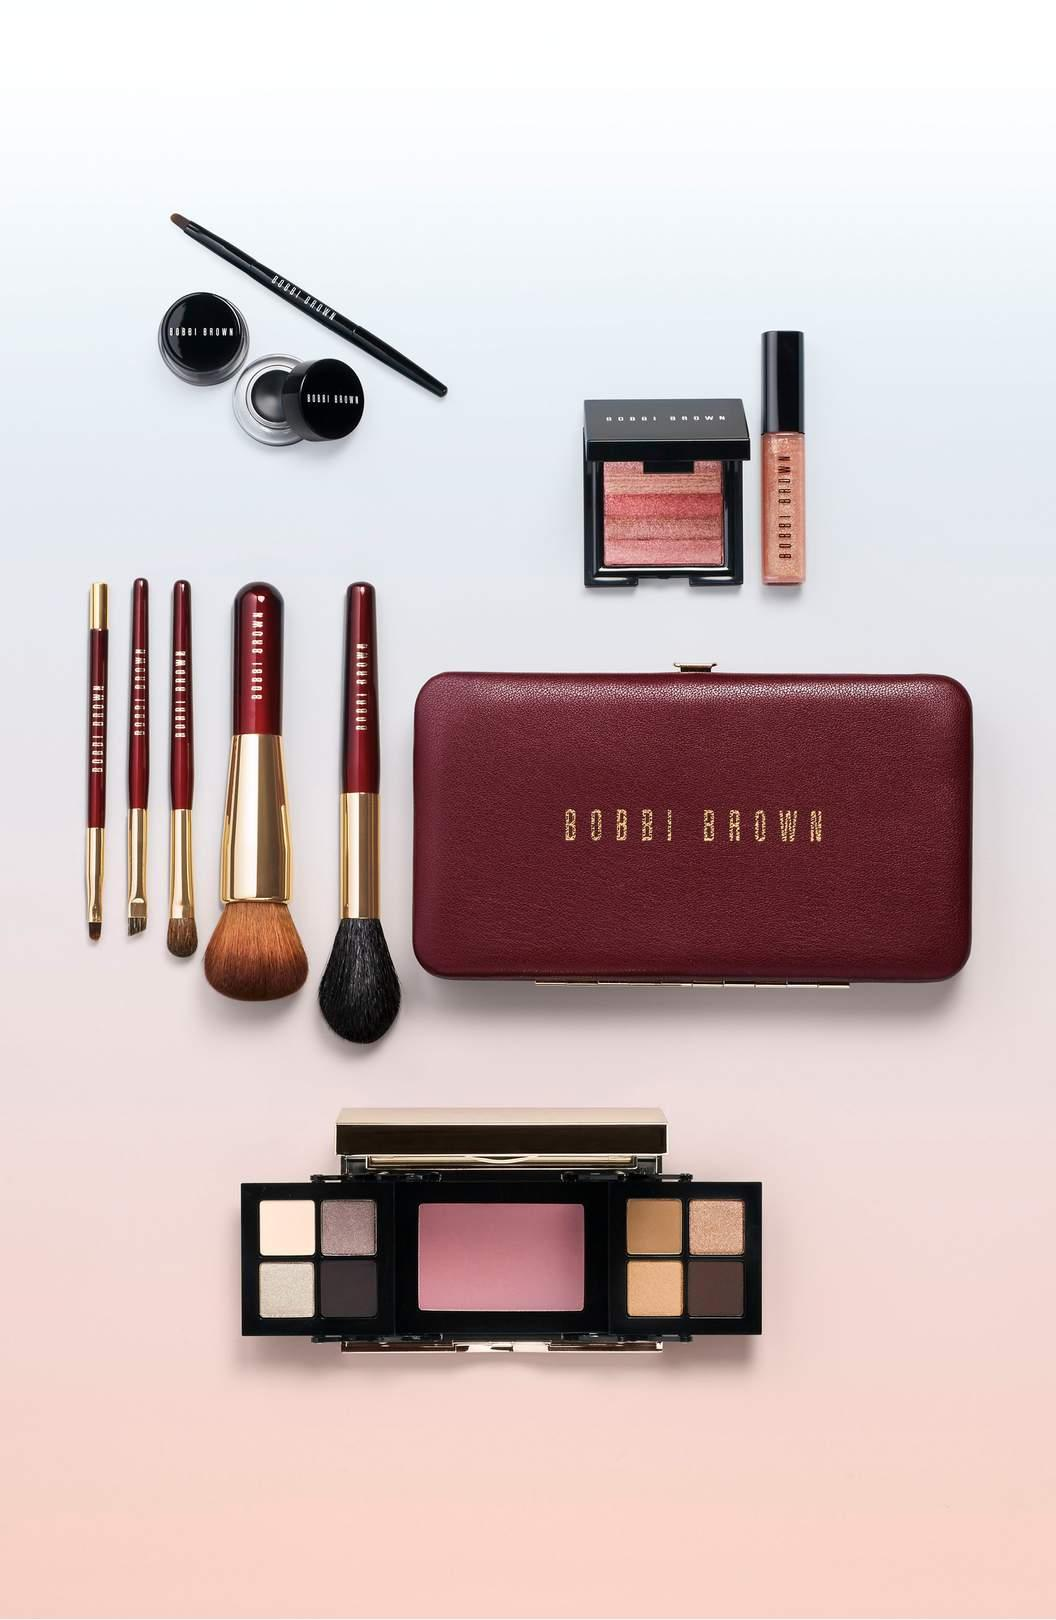 <p>It's Your Party Eye and Cheek Palette - $75. Purchase this Bobbi Brown eye and cheek palette for the beauty babe in your life. It features everything you need to make the right kind of entrance. Plus, it's a steal of a deal, pay $75 for a $103 value. Purchase at Nordstrom or Bobbiebrown.com. (Image: Nordstrom)<br></p><p></p>